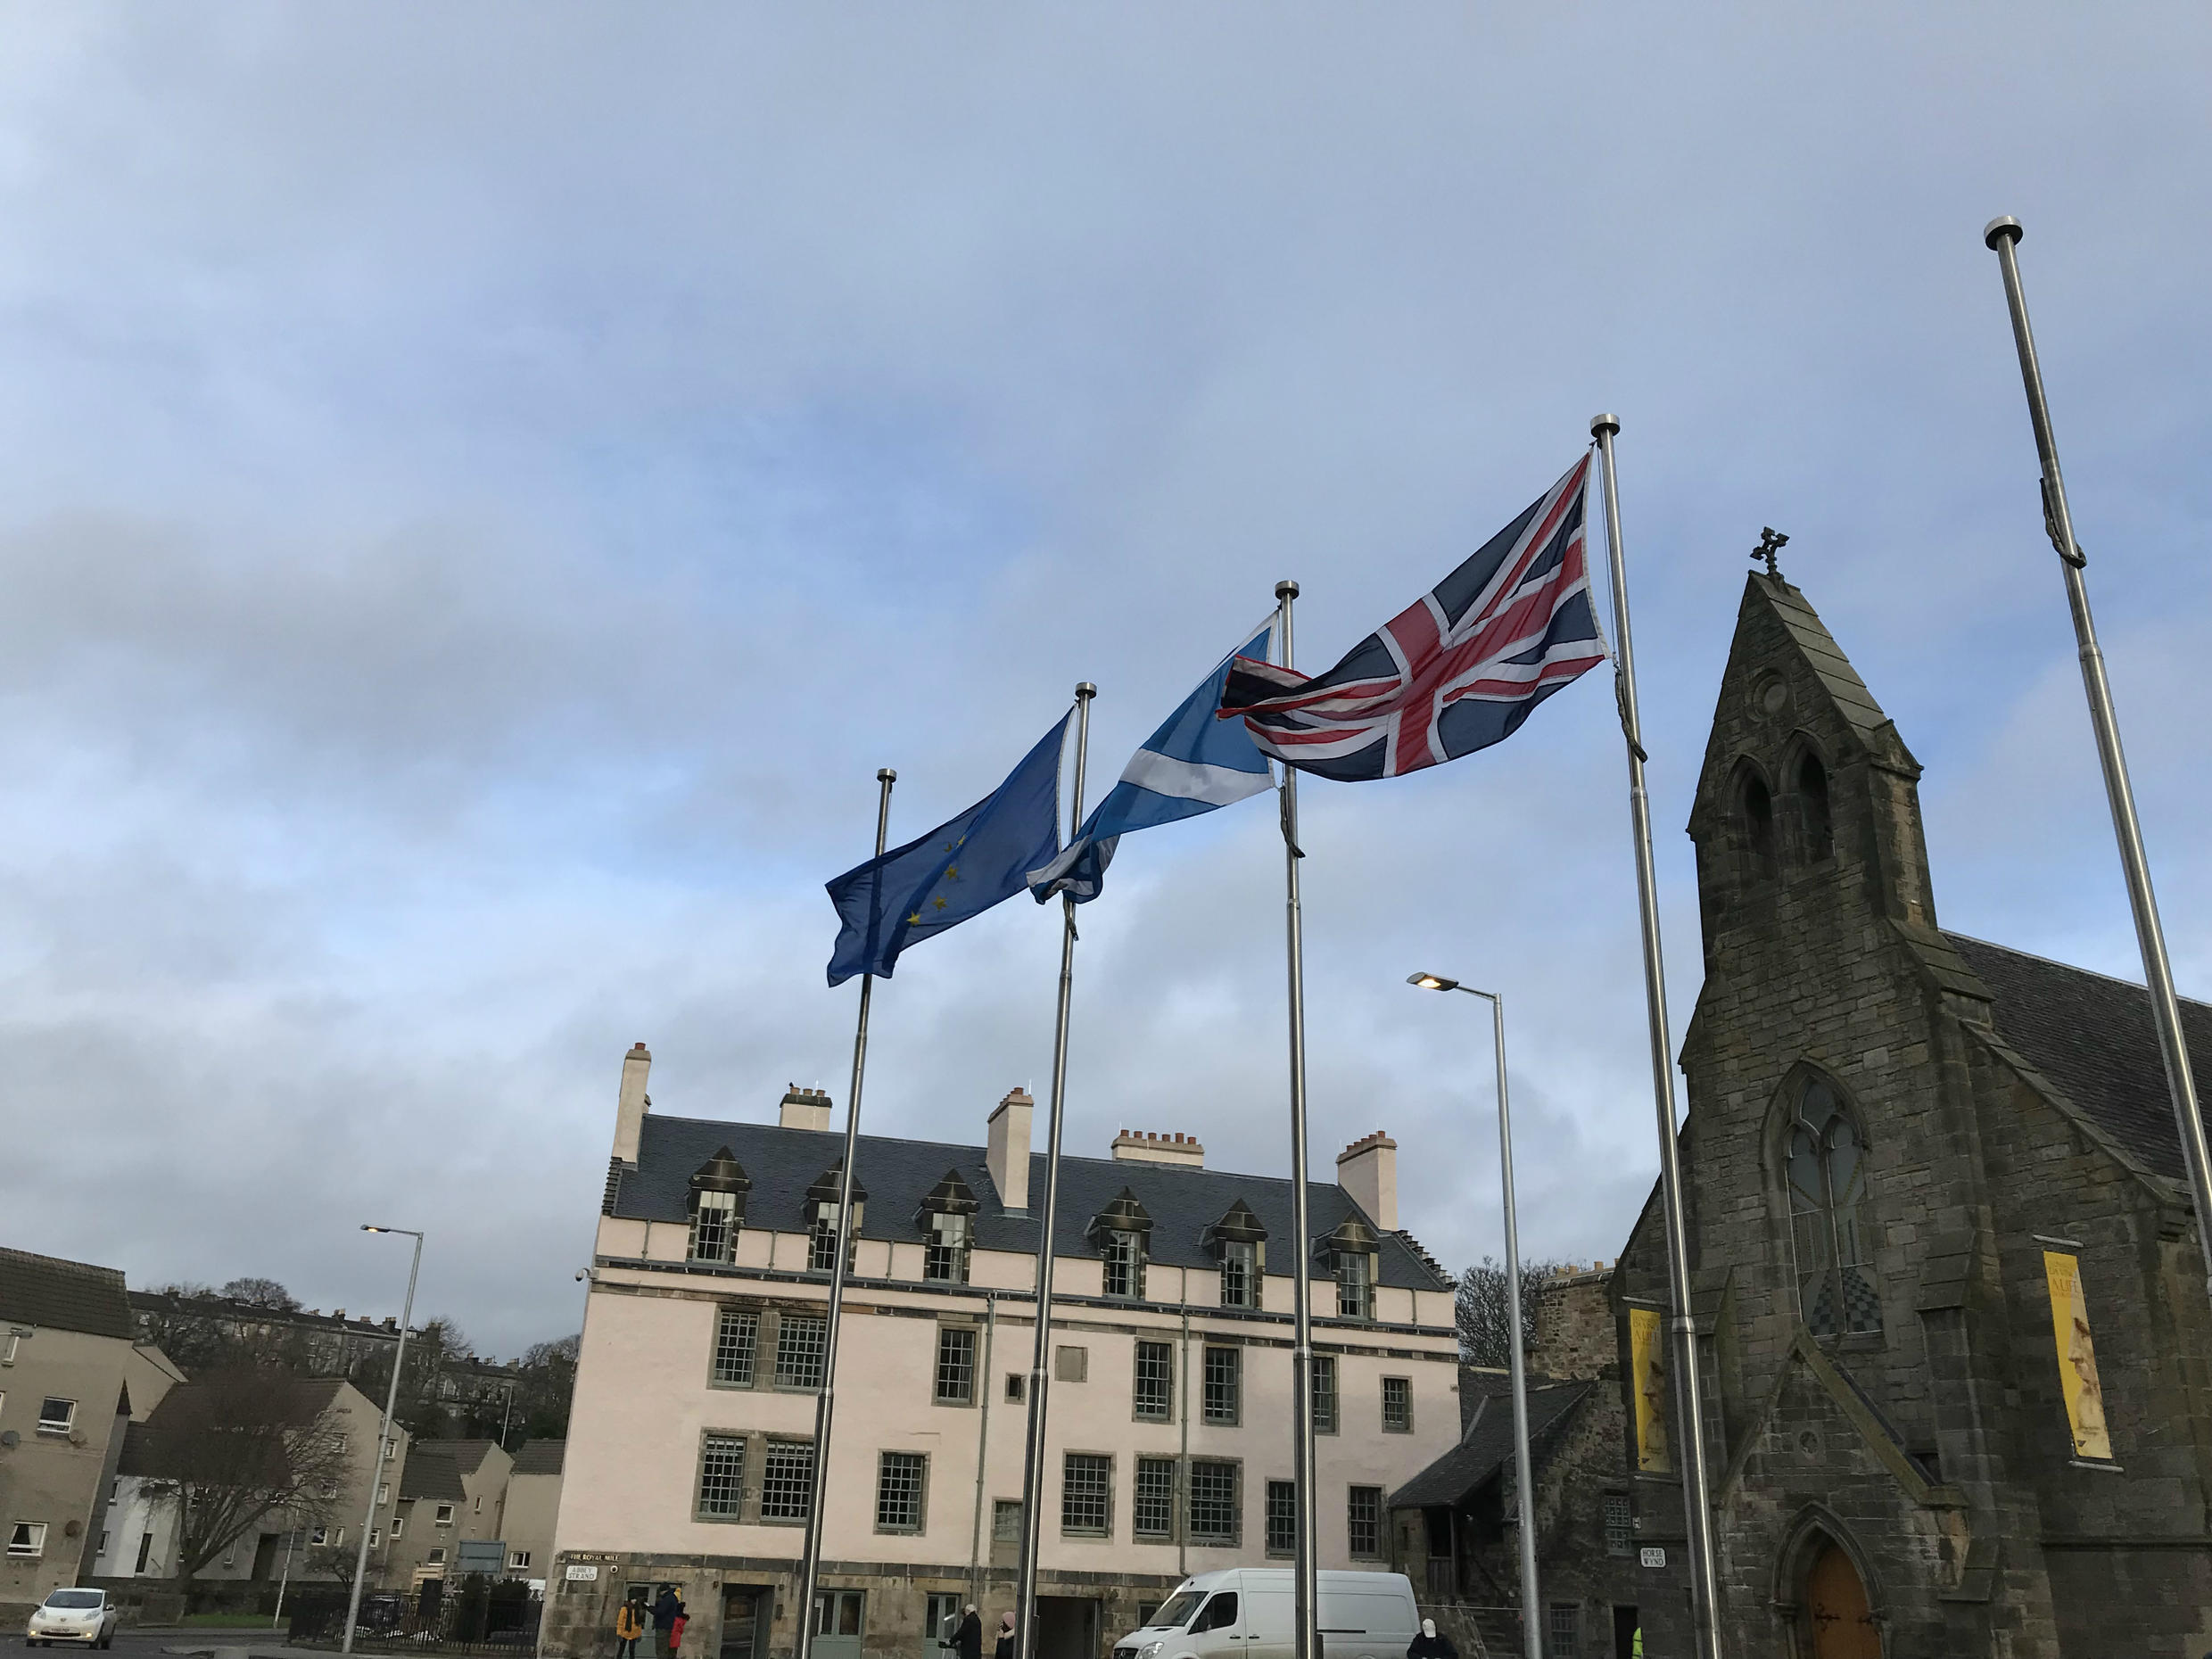 Members of the Scottish parliament voted on Wednesday to keep the European flag flying after Brexit.